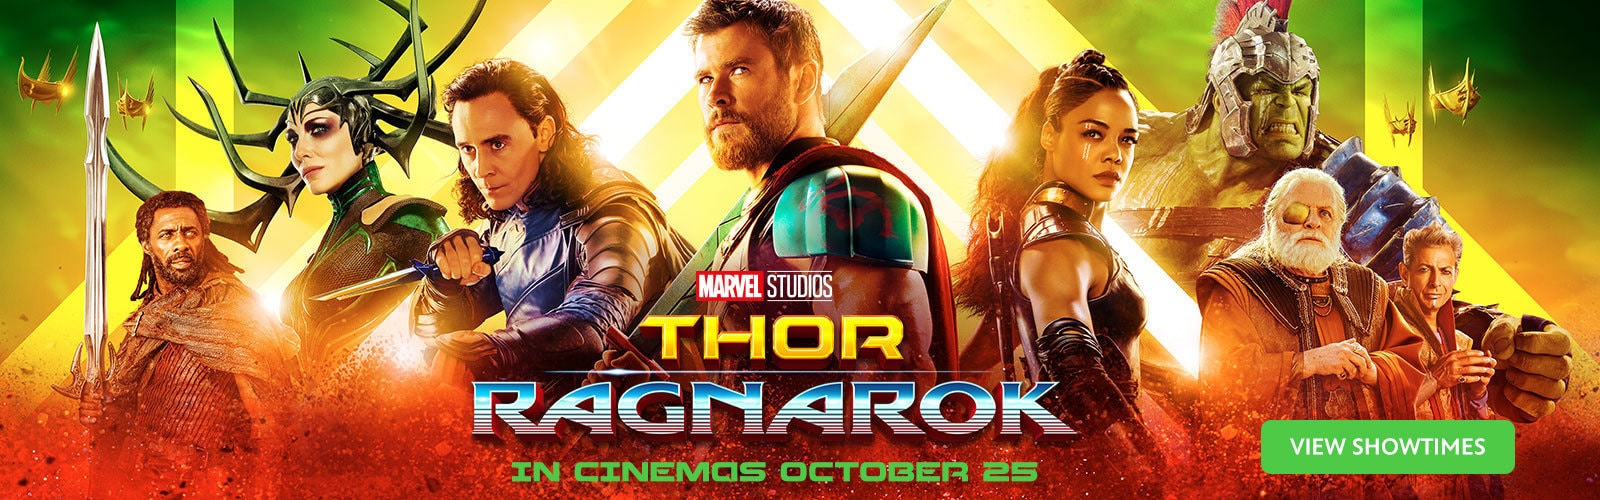 Thor Ragnarok - Tickets - Hero - PH